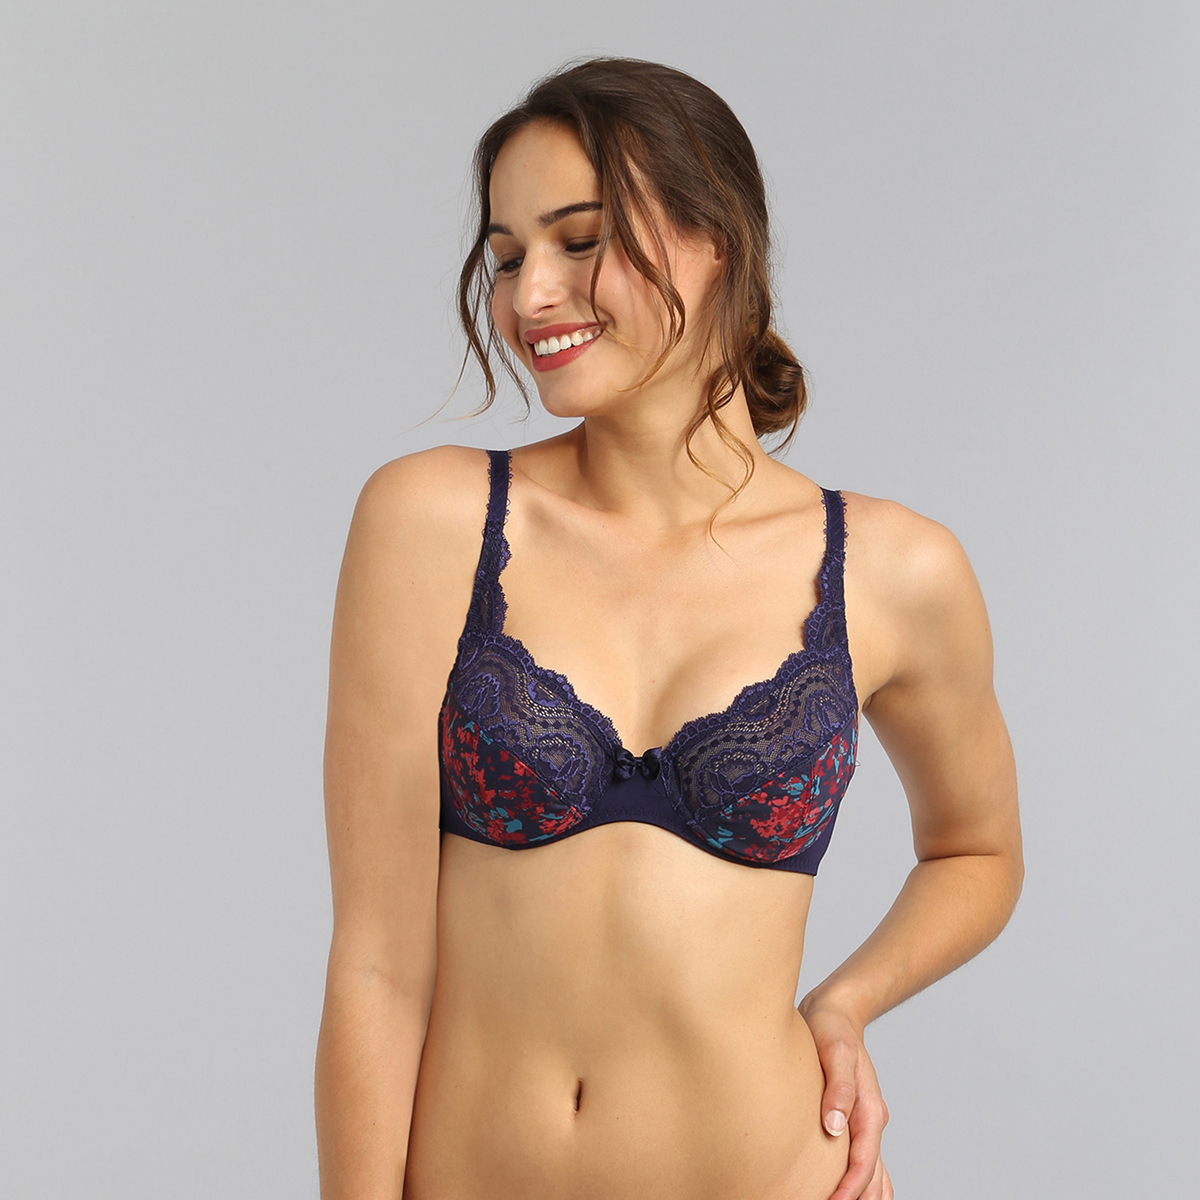 Underwired bra in blue garden print Flower Elegance Micro, , PLAYTEX